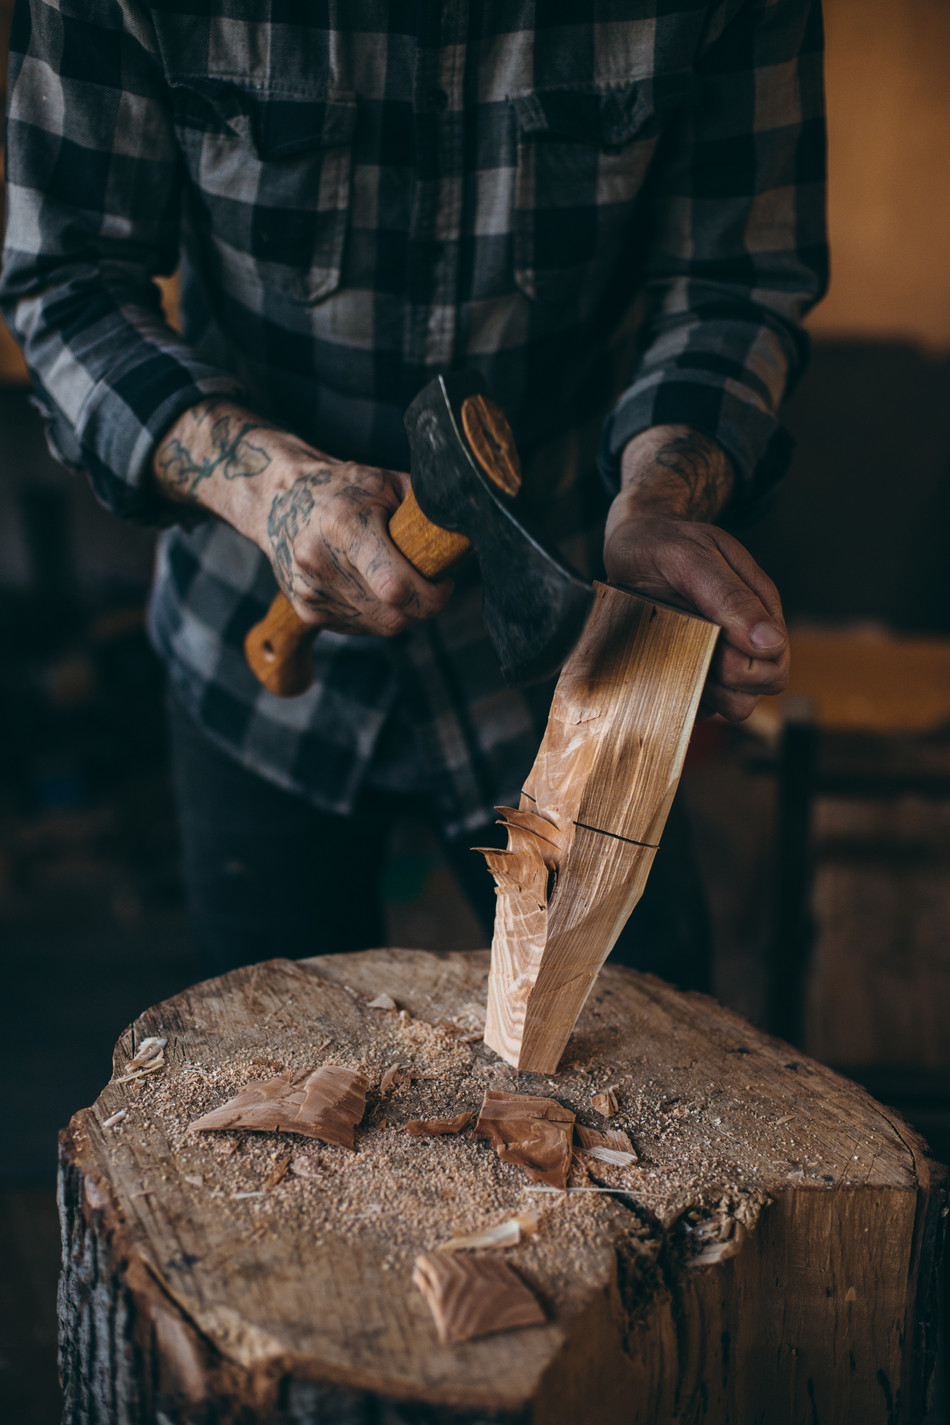 Roughing in the shape of the spoon with a hatchet